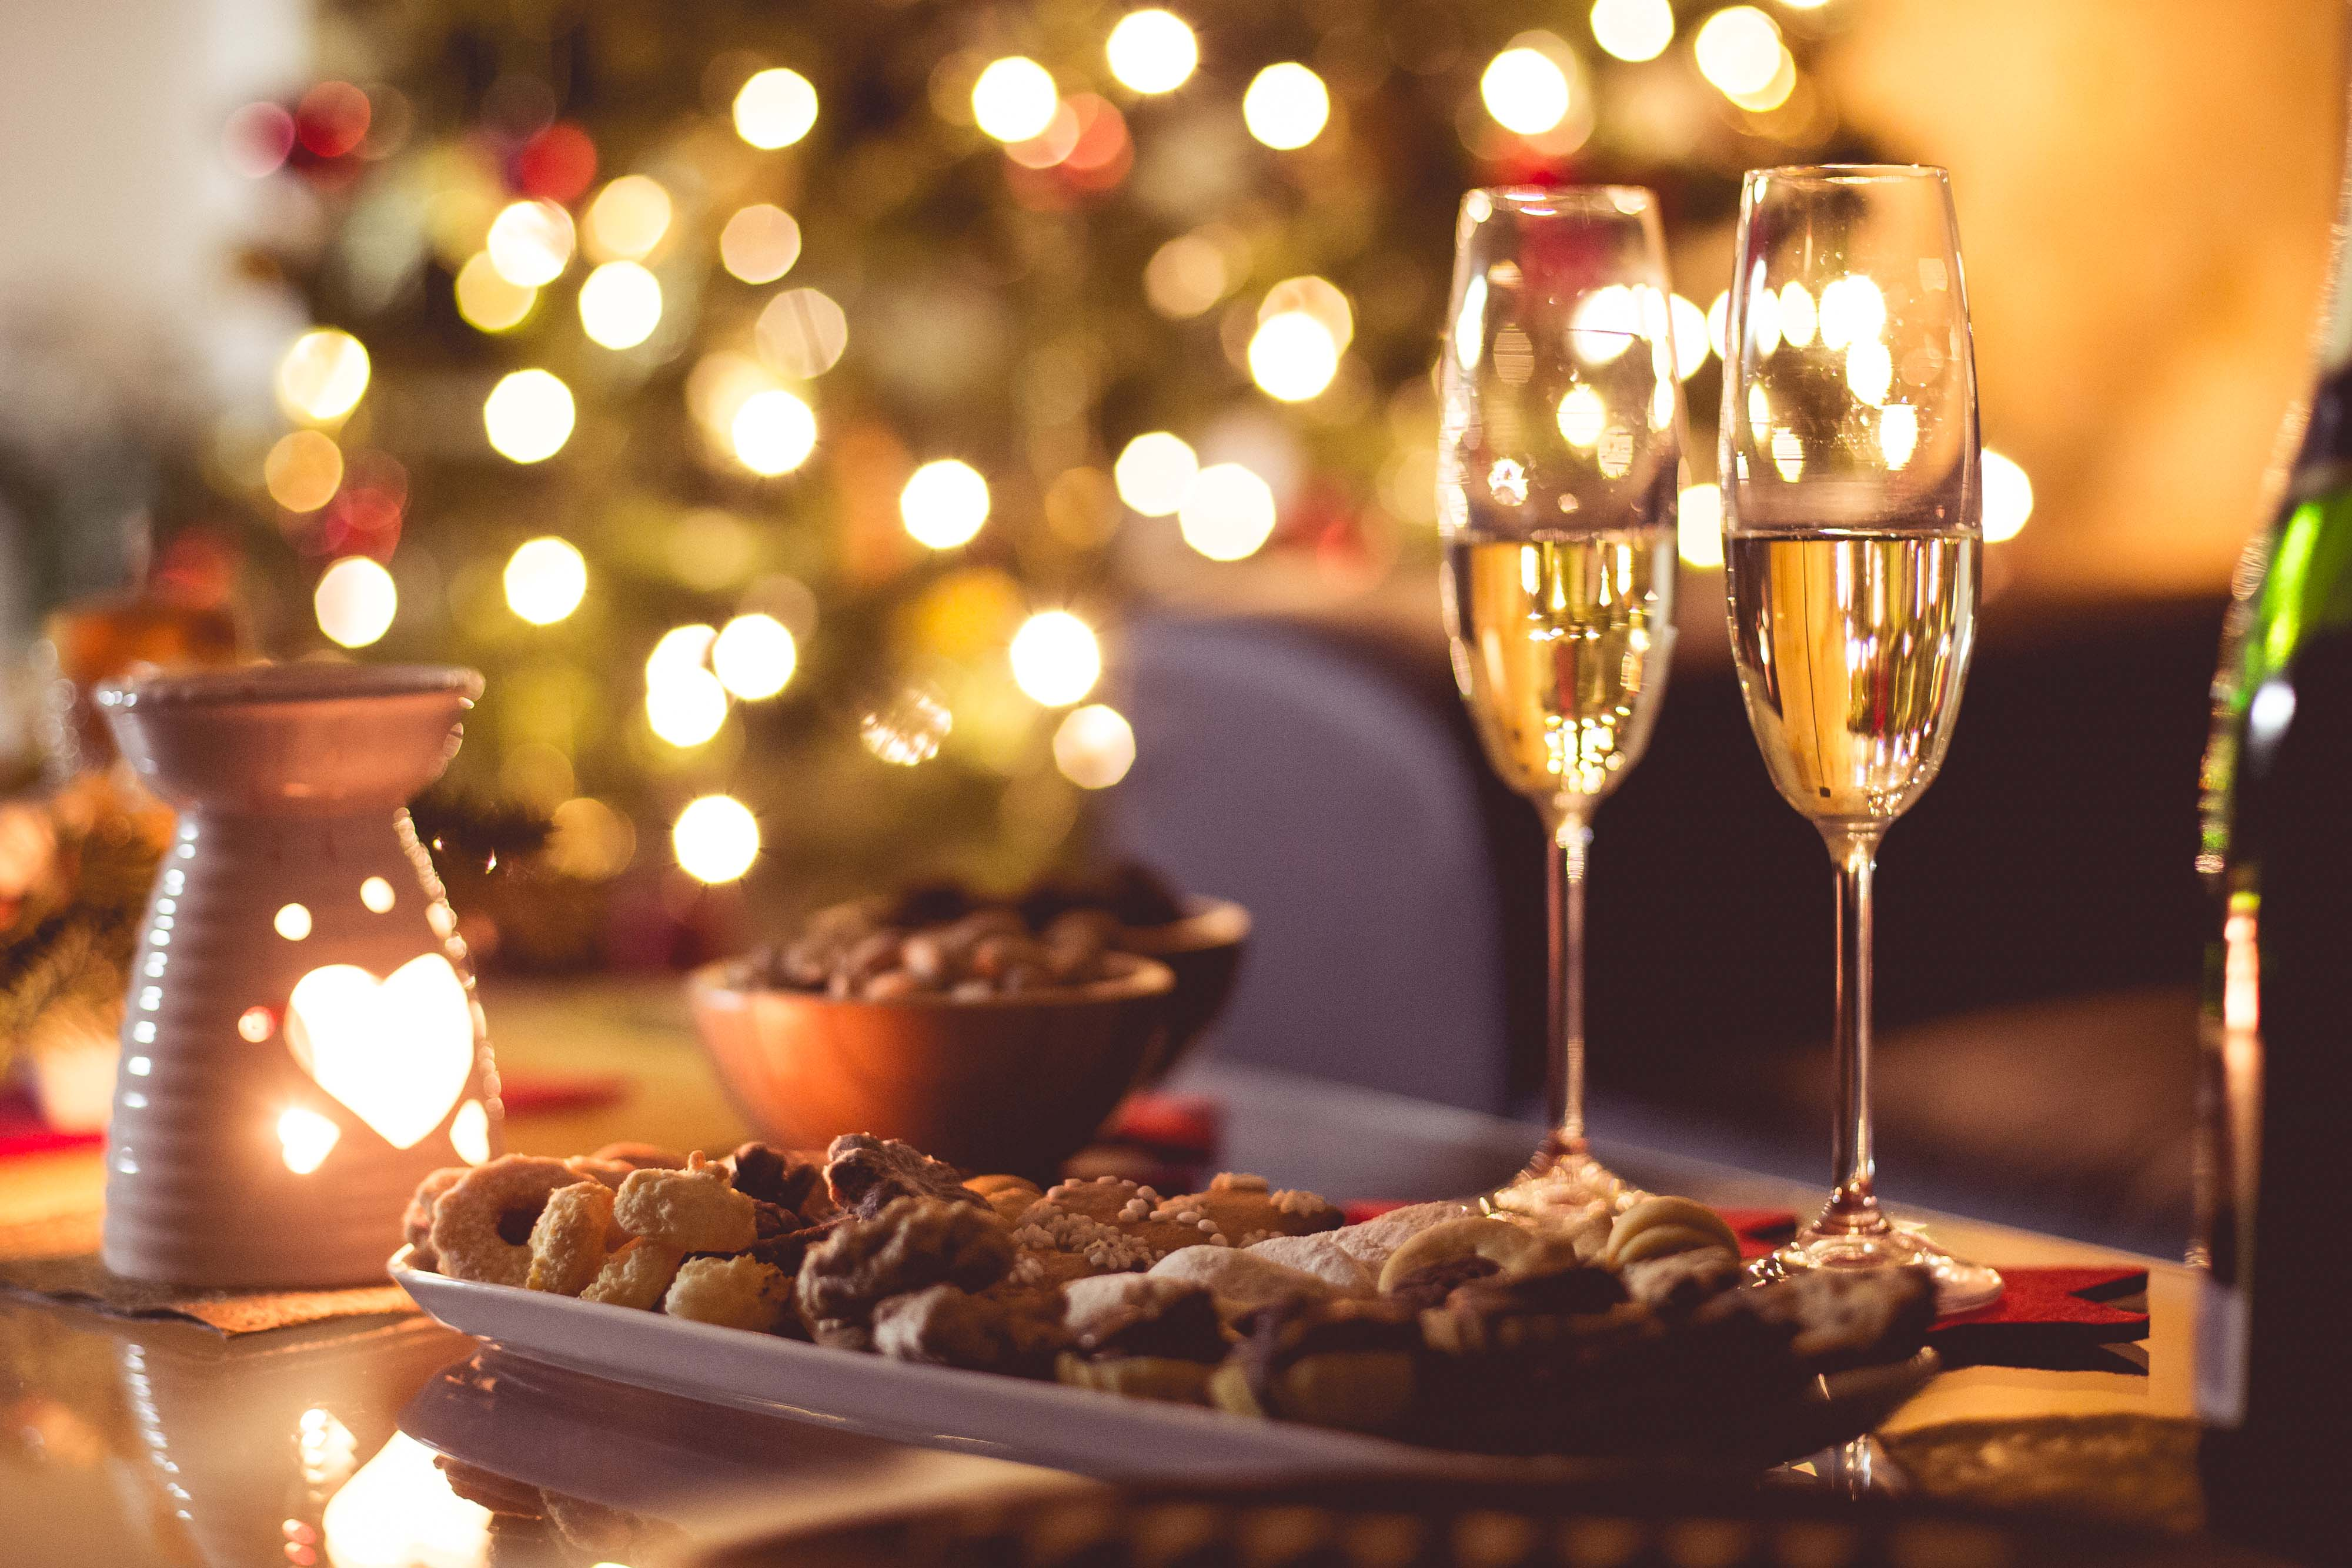 Holiday Image Of Food And Wine